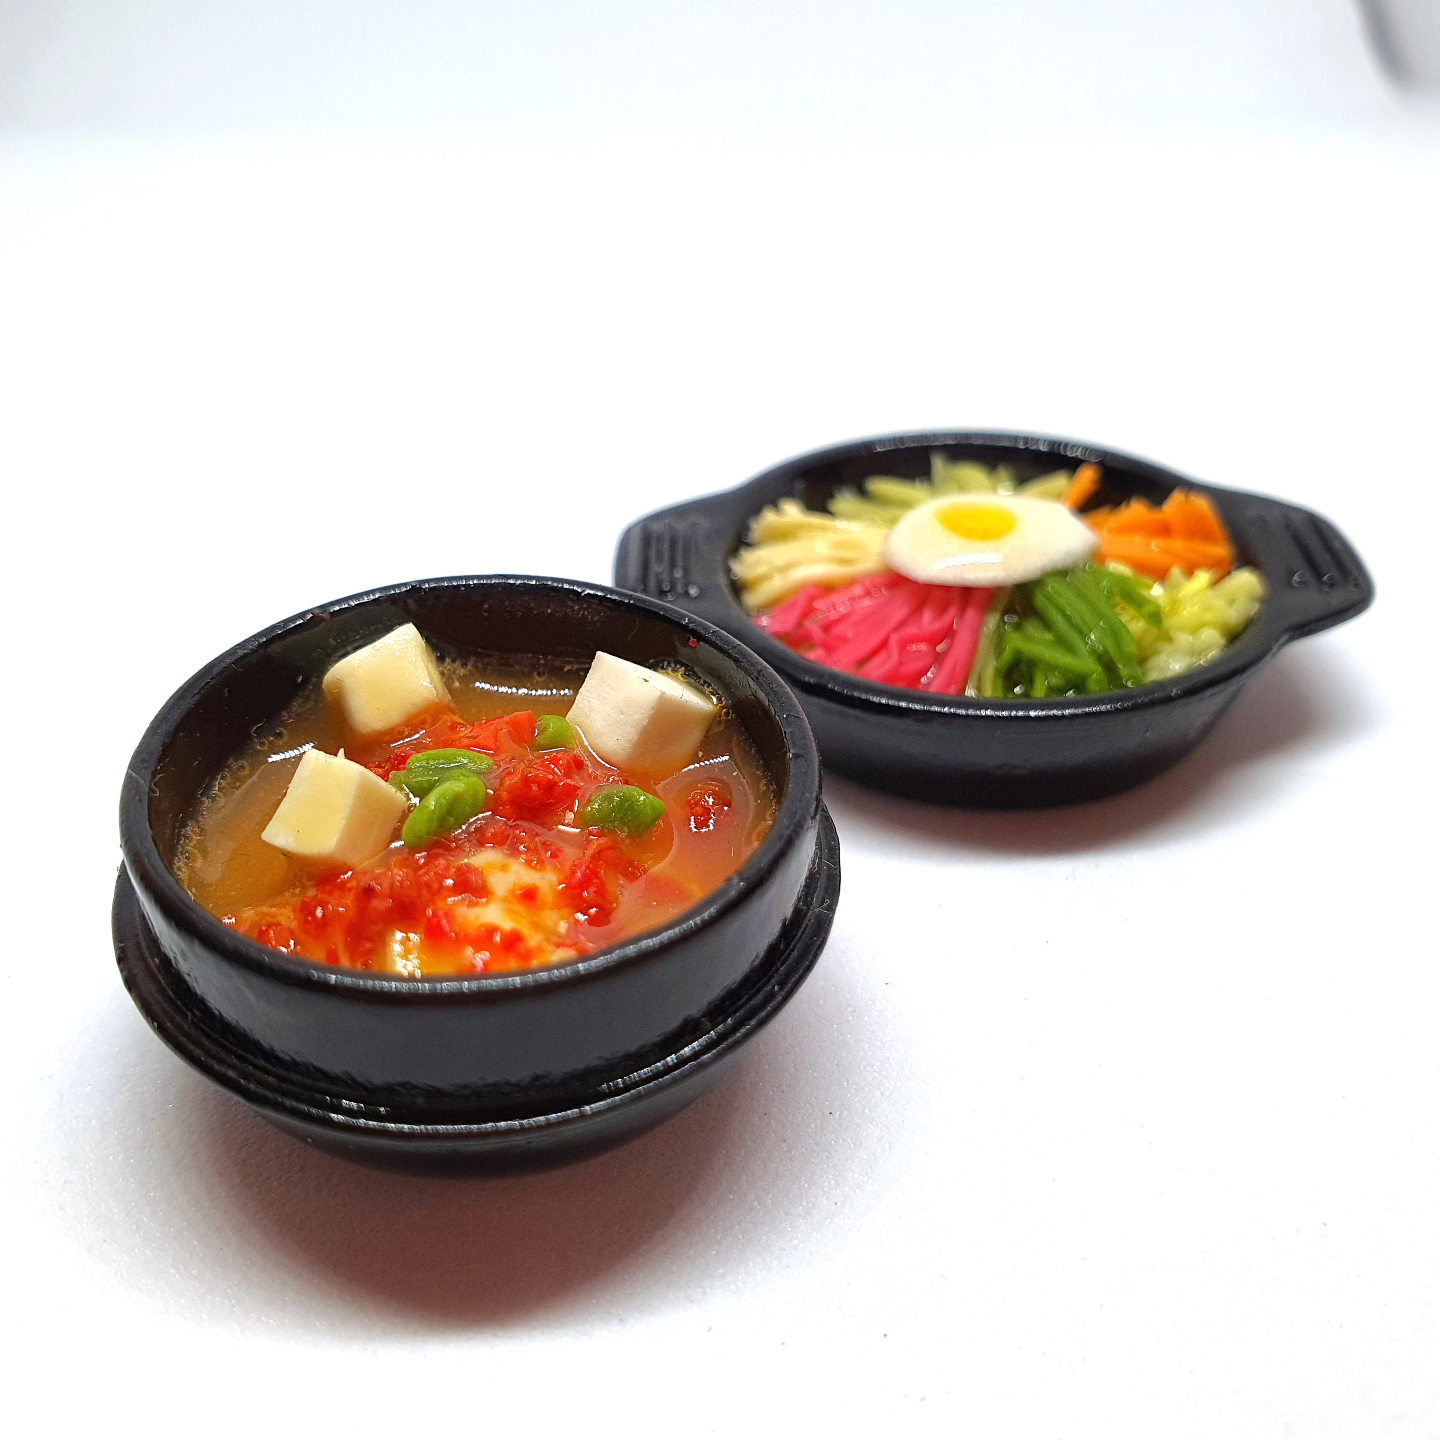 Handmade Miniature: Korean Tofu Stew by Madam Ang Miniature World